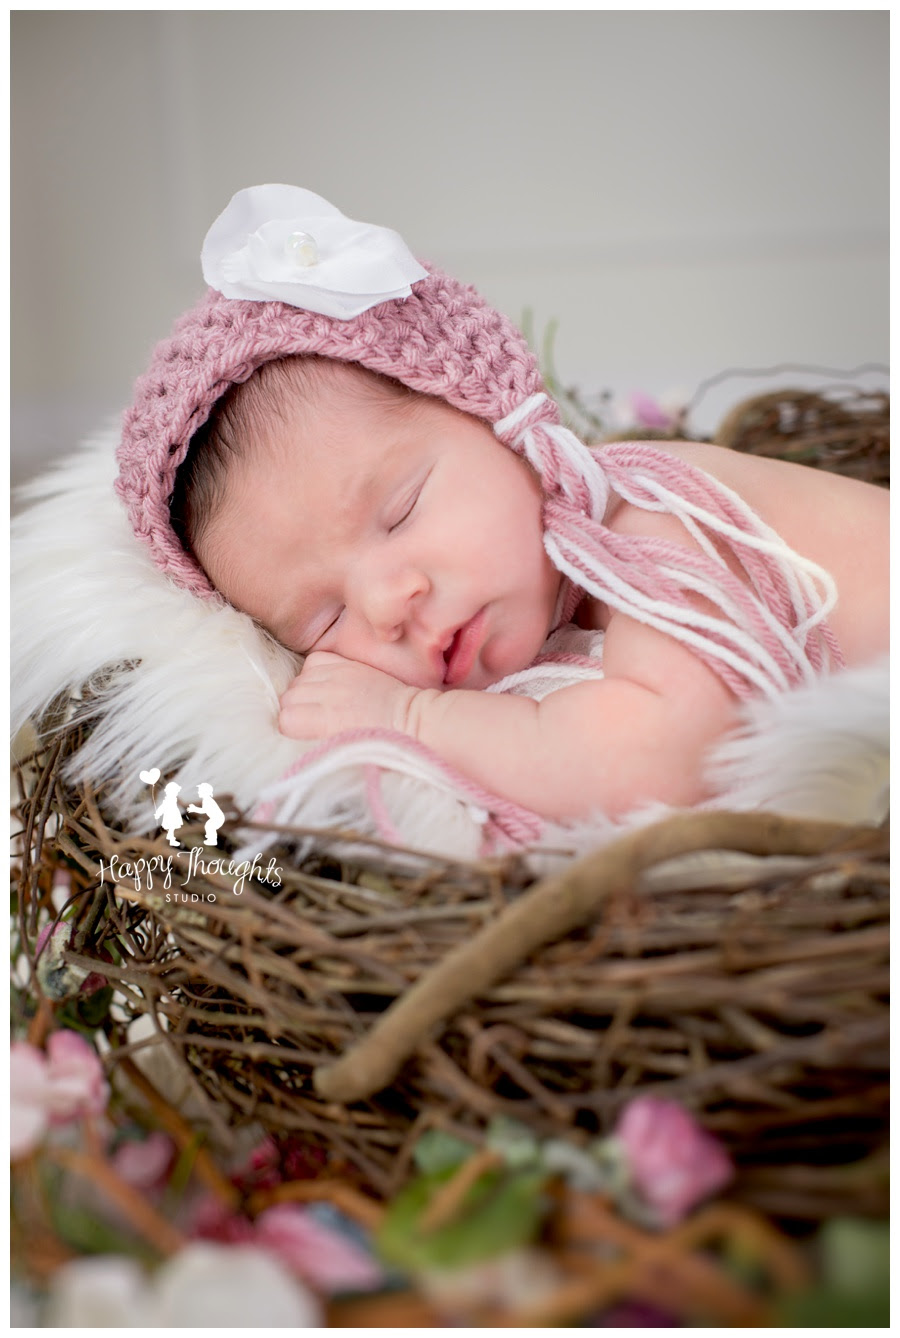 Vintage Newborn Baby Girl Session Happy Thoughts Studiohappy